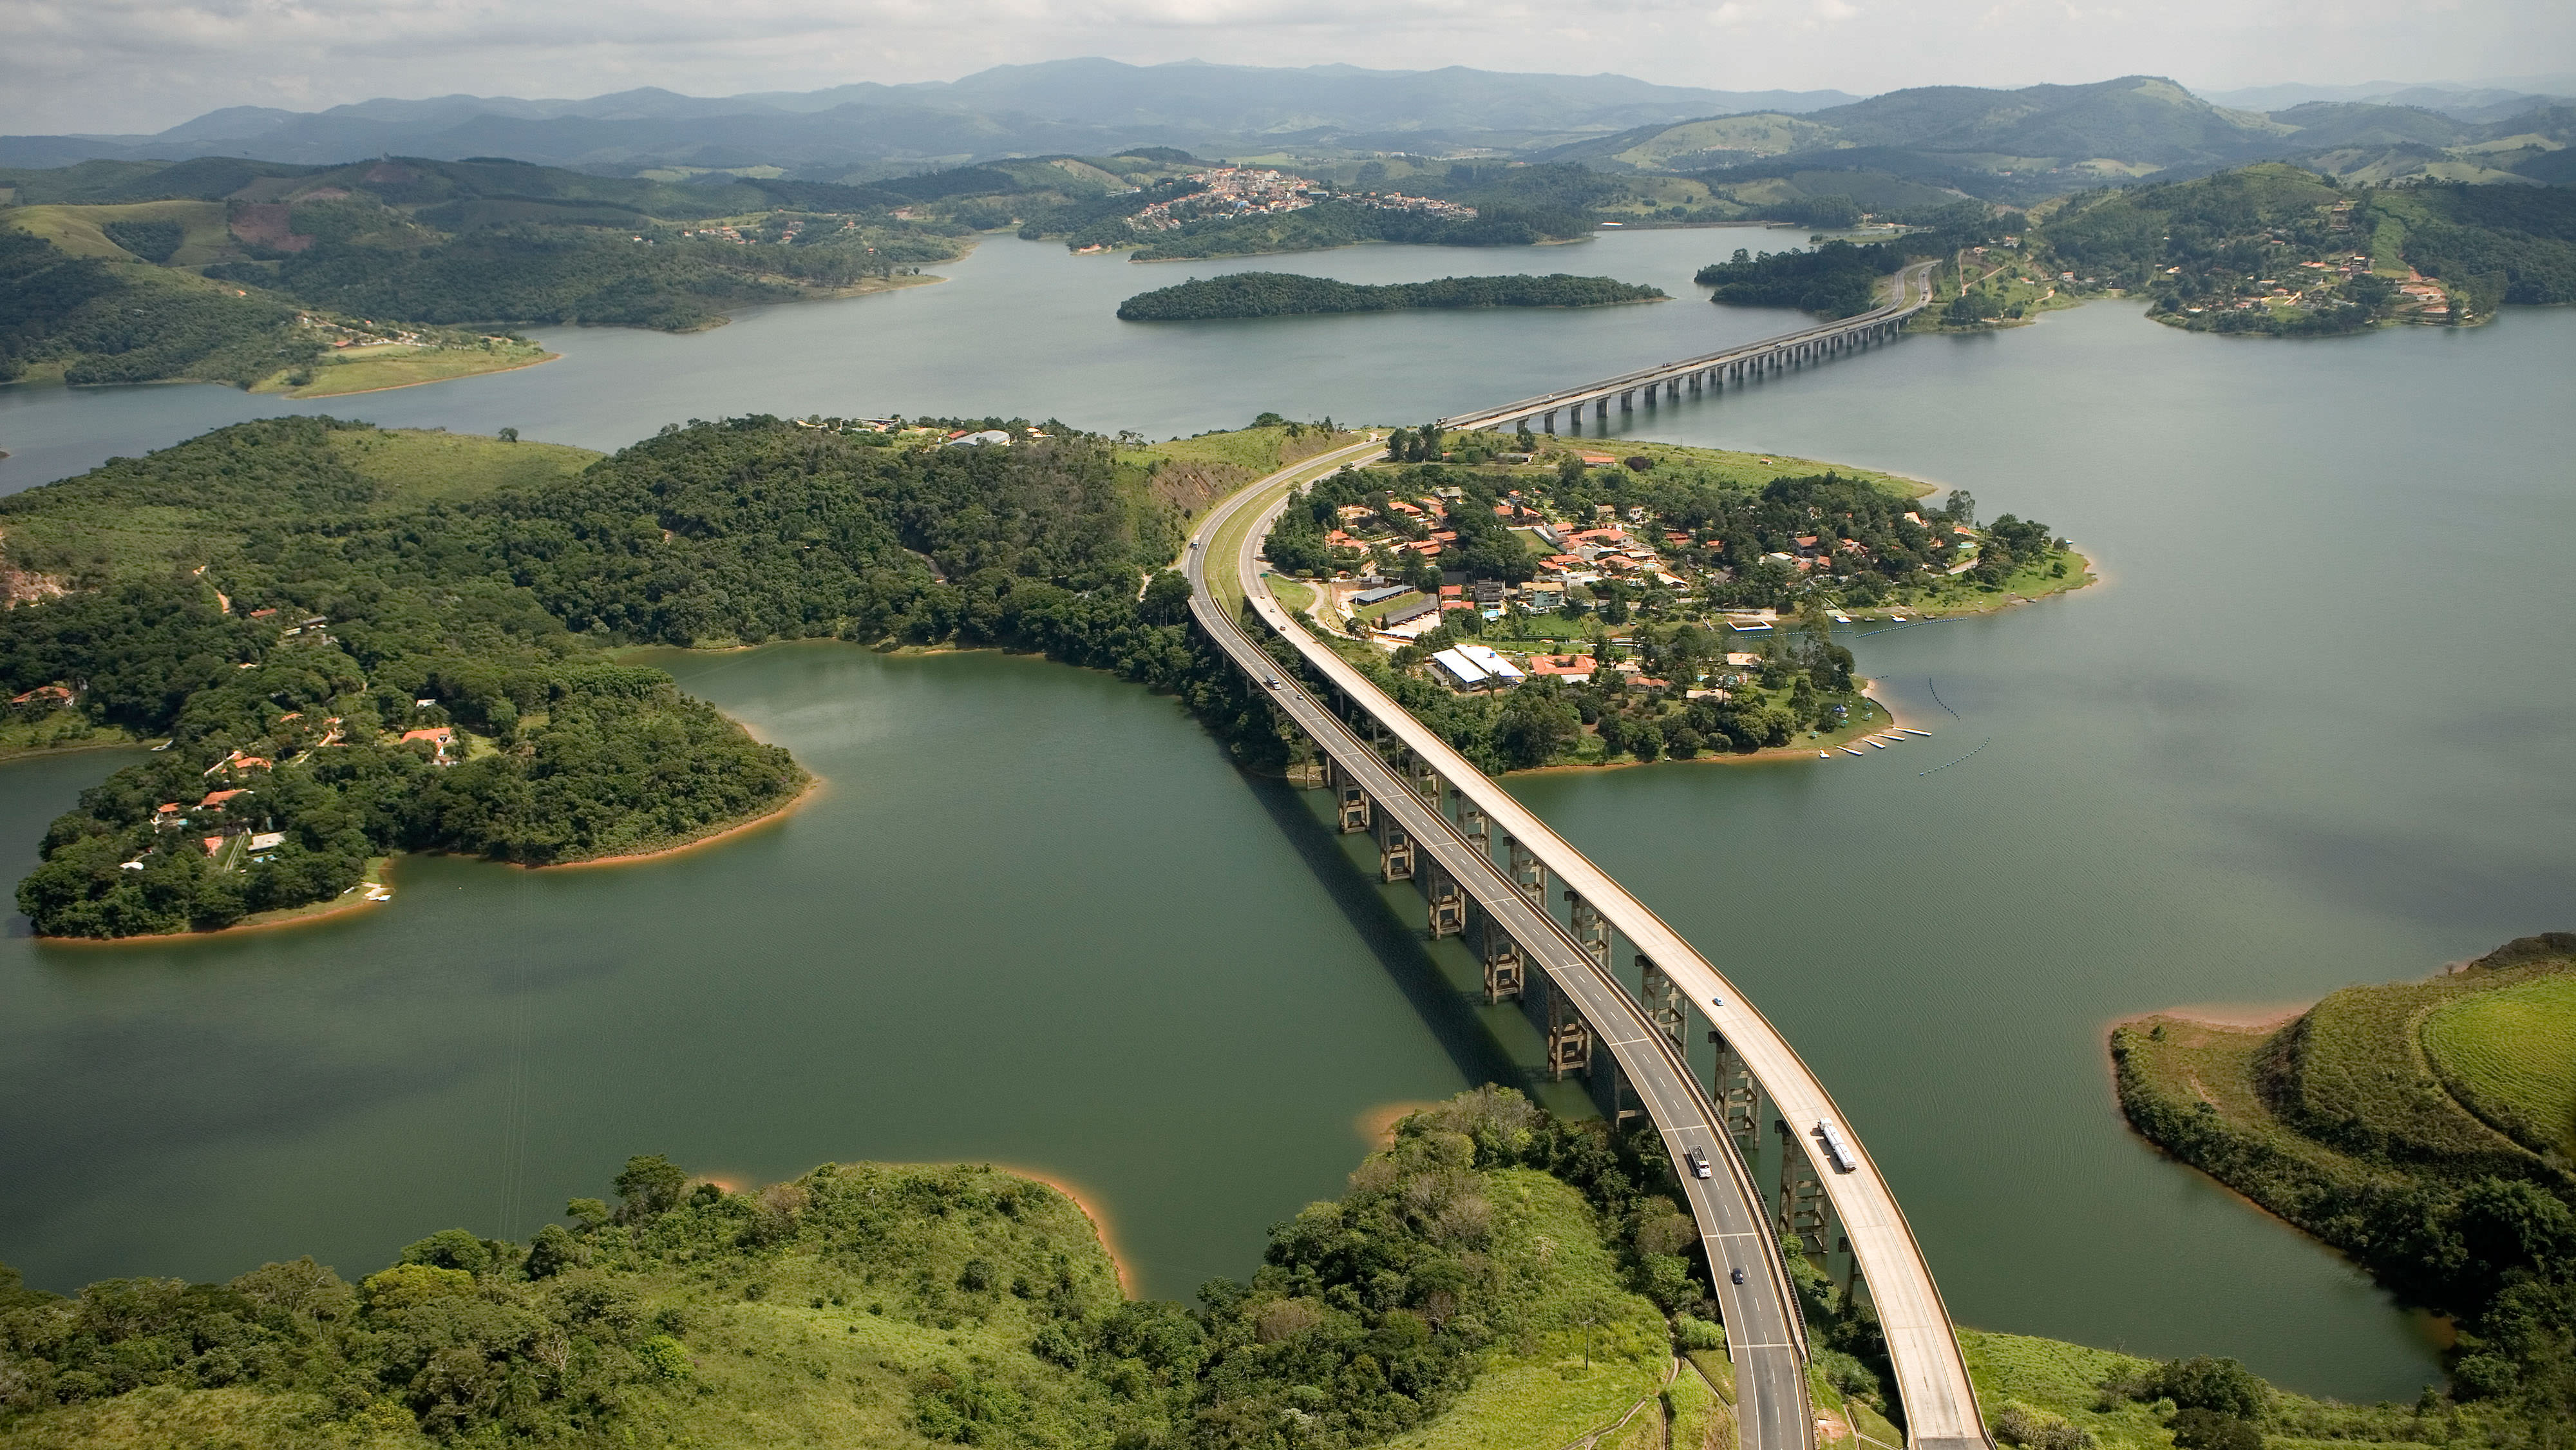 View of road running over reservoir in Brazil.